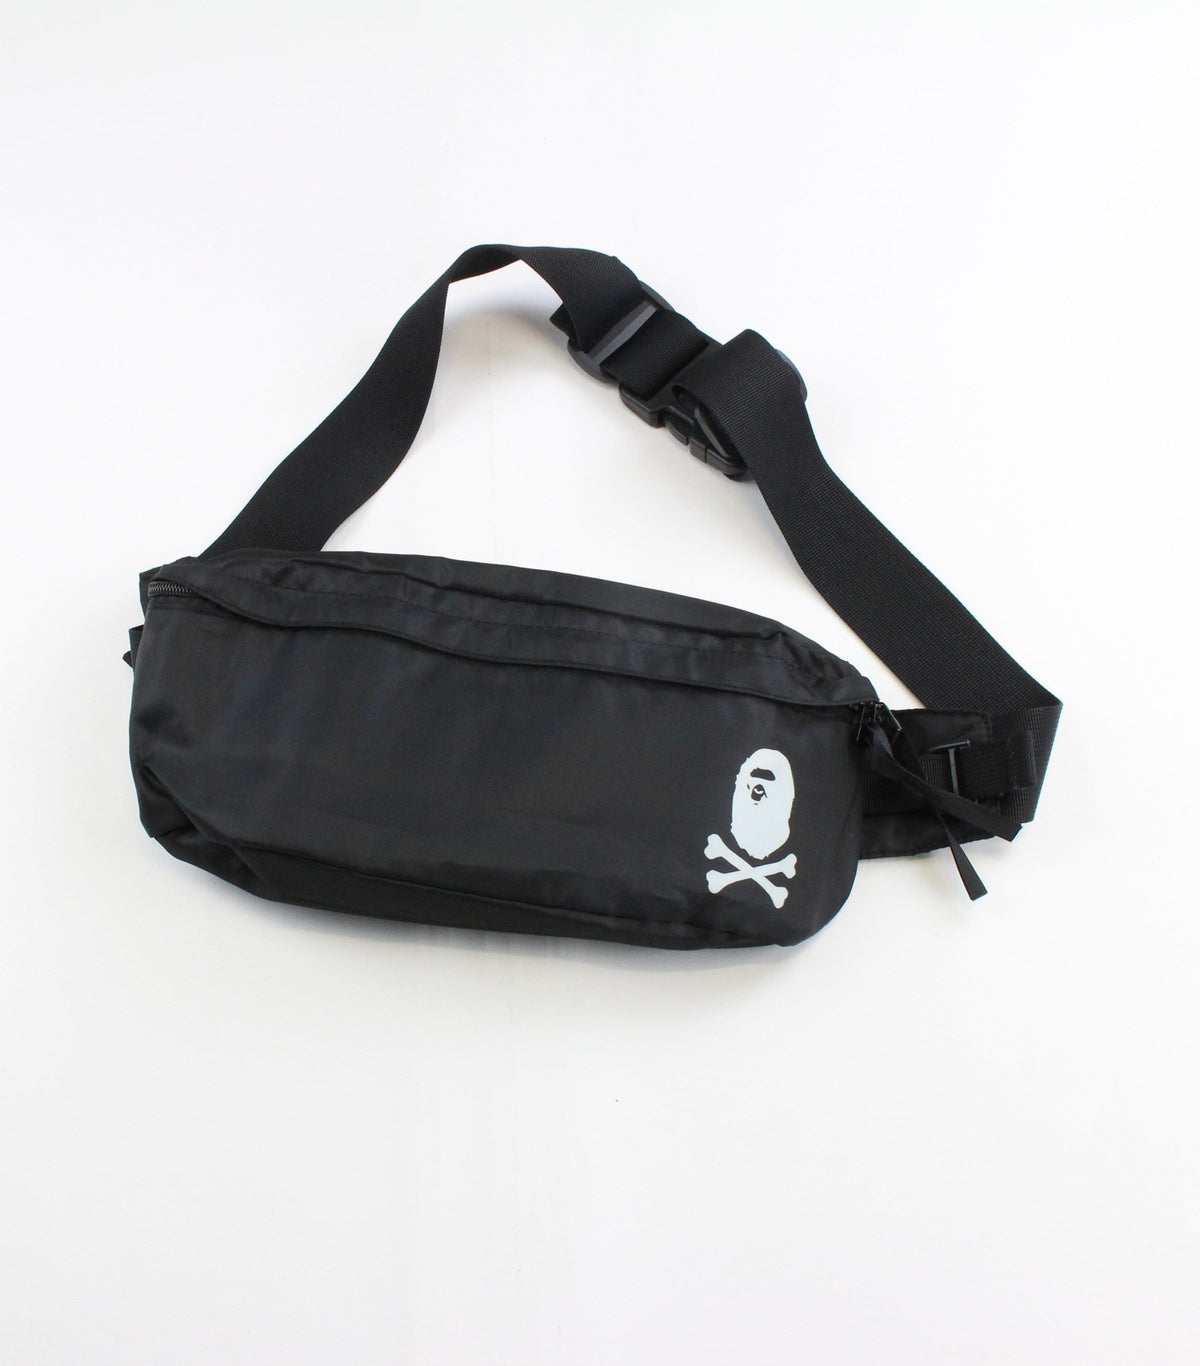 Bape pirate store Crossbones Hip Bag Black - SaruGeneral